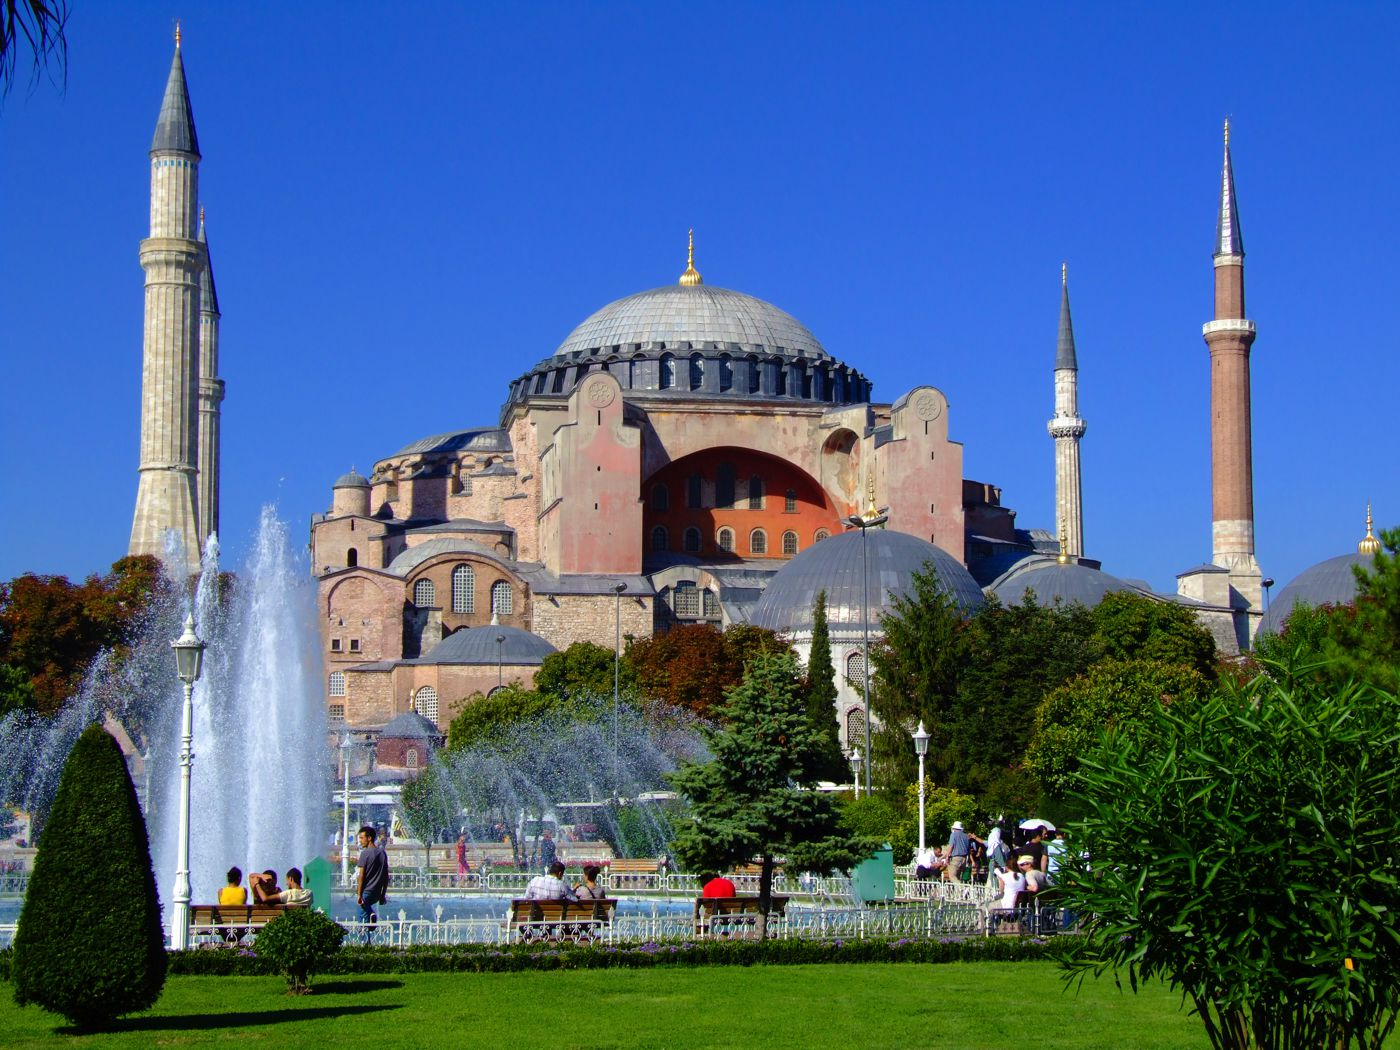 http://handluggageonly.co.uk/wp-content/uploads/2014/10/Hagia-Sophia.jpg